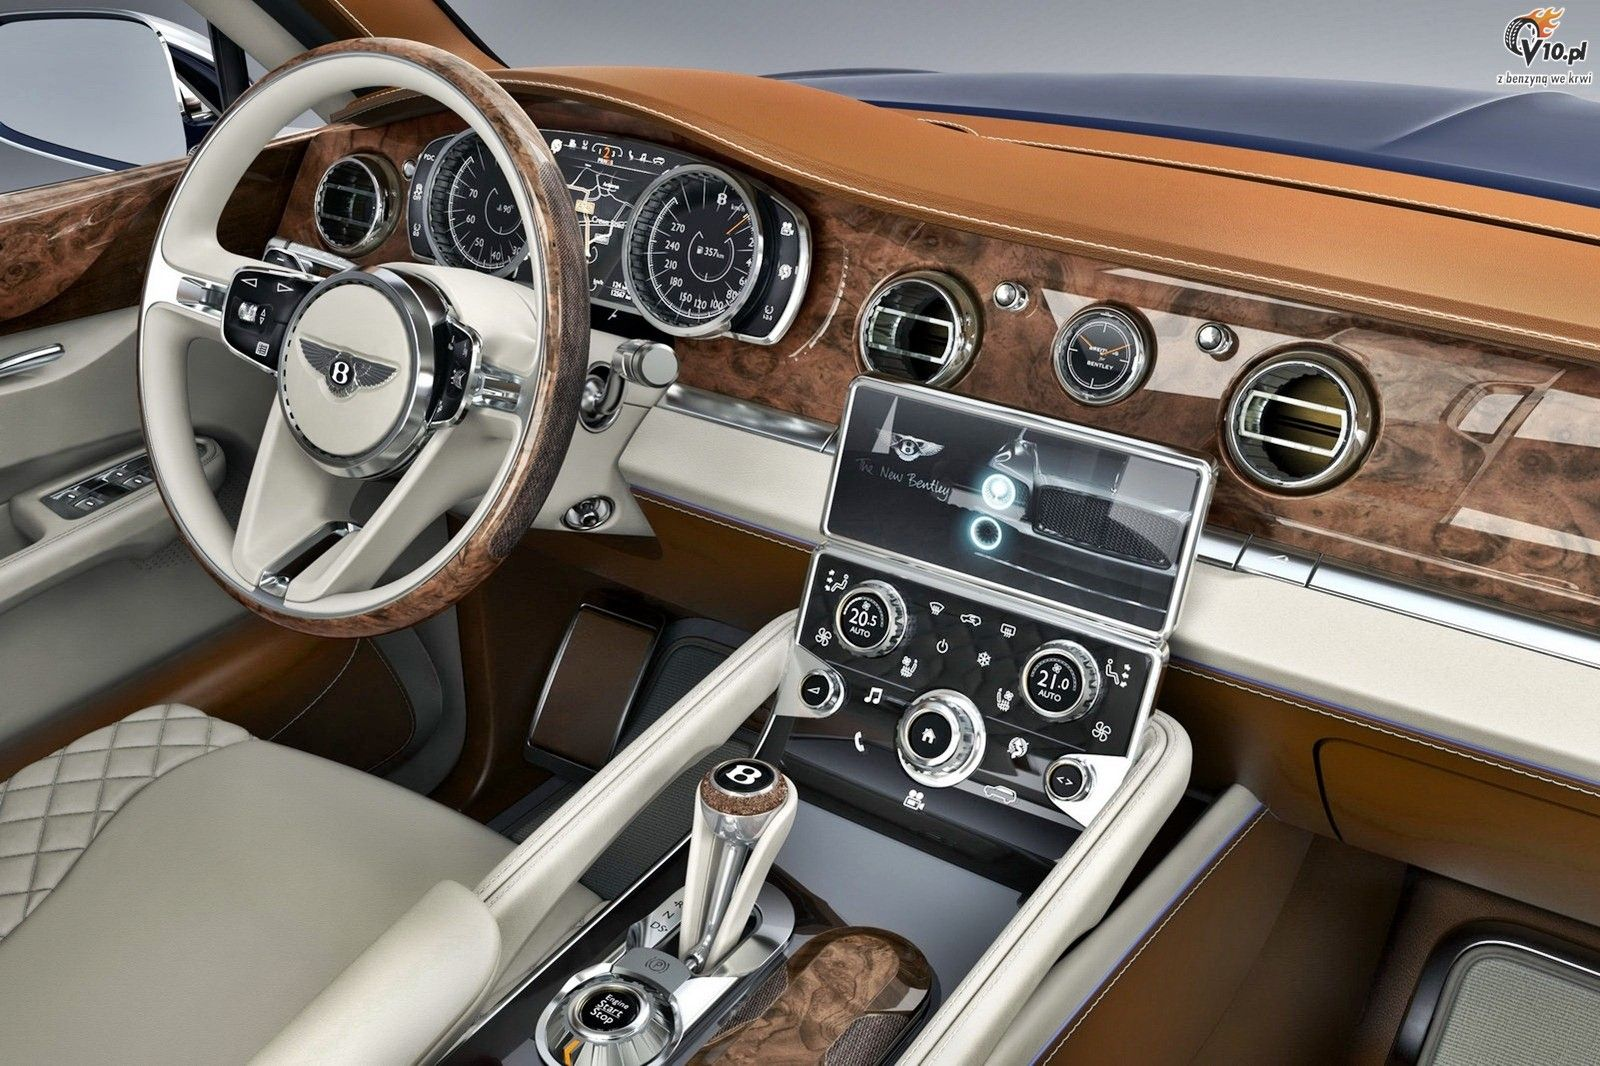 bentley interior pictures bentley falcon suv interior. Black Bedroom Furniture Sets. Home Design Ideas